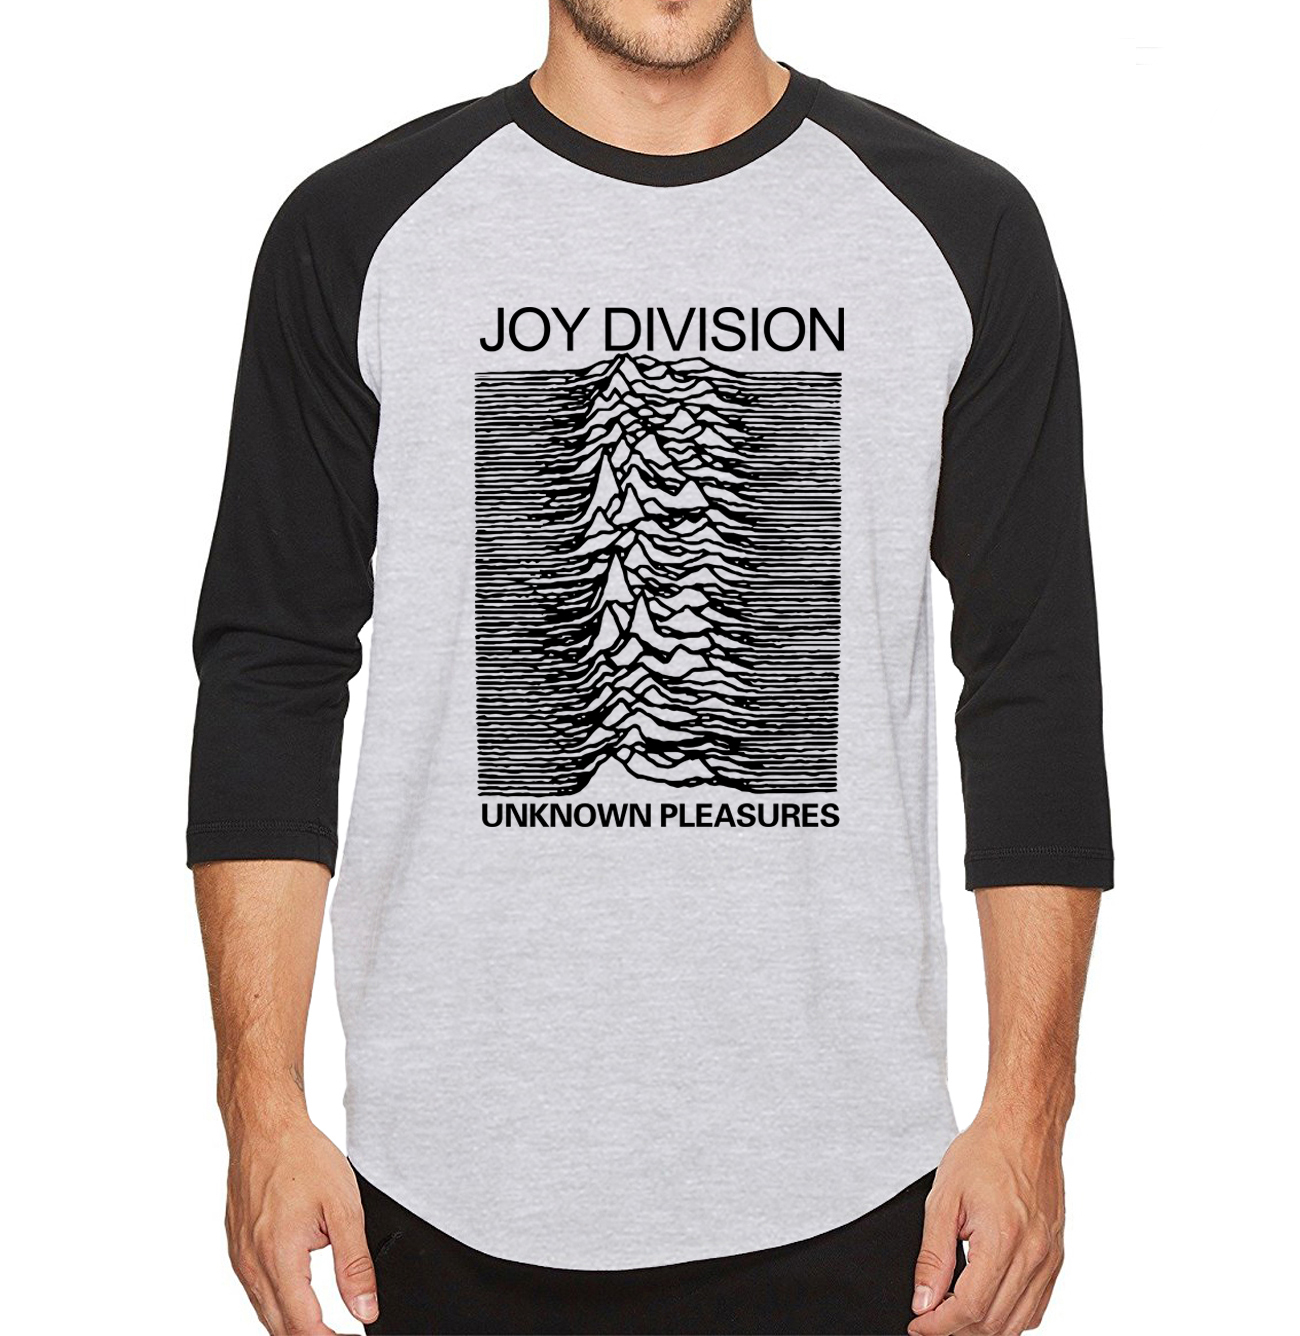 Fashion Rock Mens 2019 New   T     Shirts   Joy Division Funny Tshirts 100% Cotton High Quality Three Quarter Sleeve   T  -  Shirt   tops